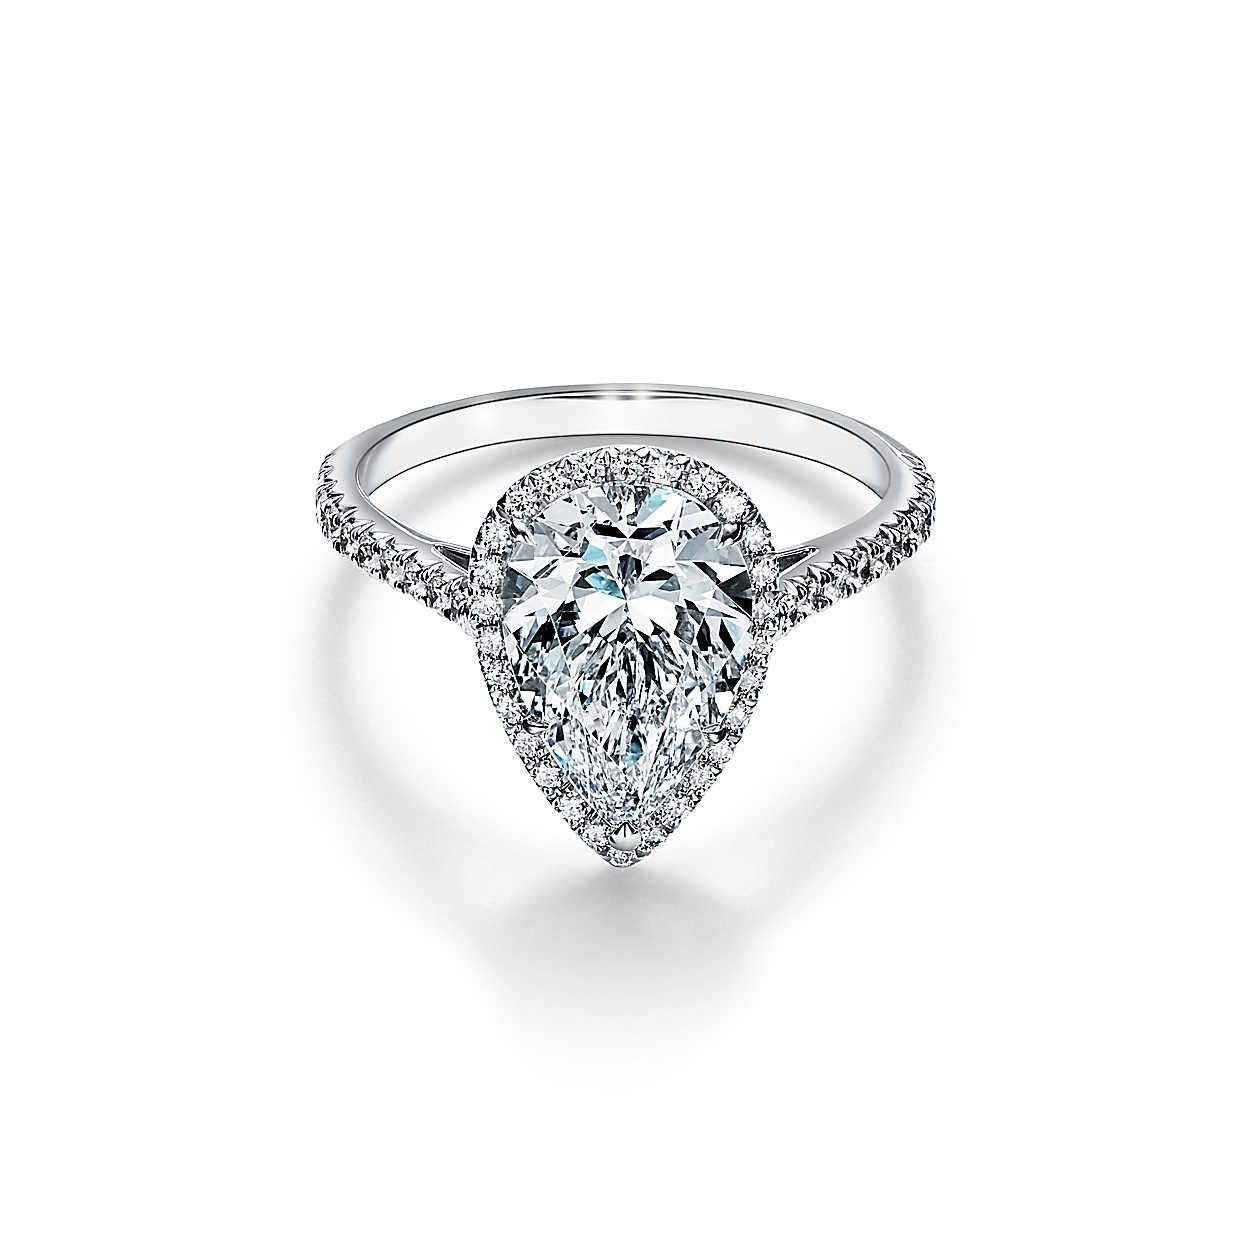 34 Pear Shaped Engagement Rings For Every Bride Intended For Winston Blossom Diamond Engagement Rings (View 13 of 25)